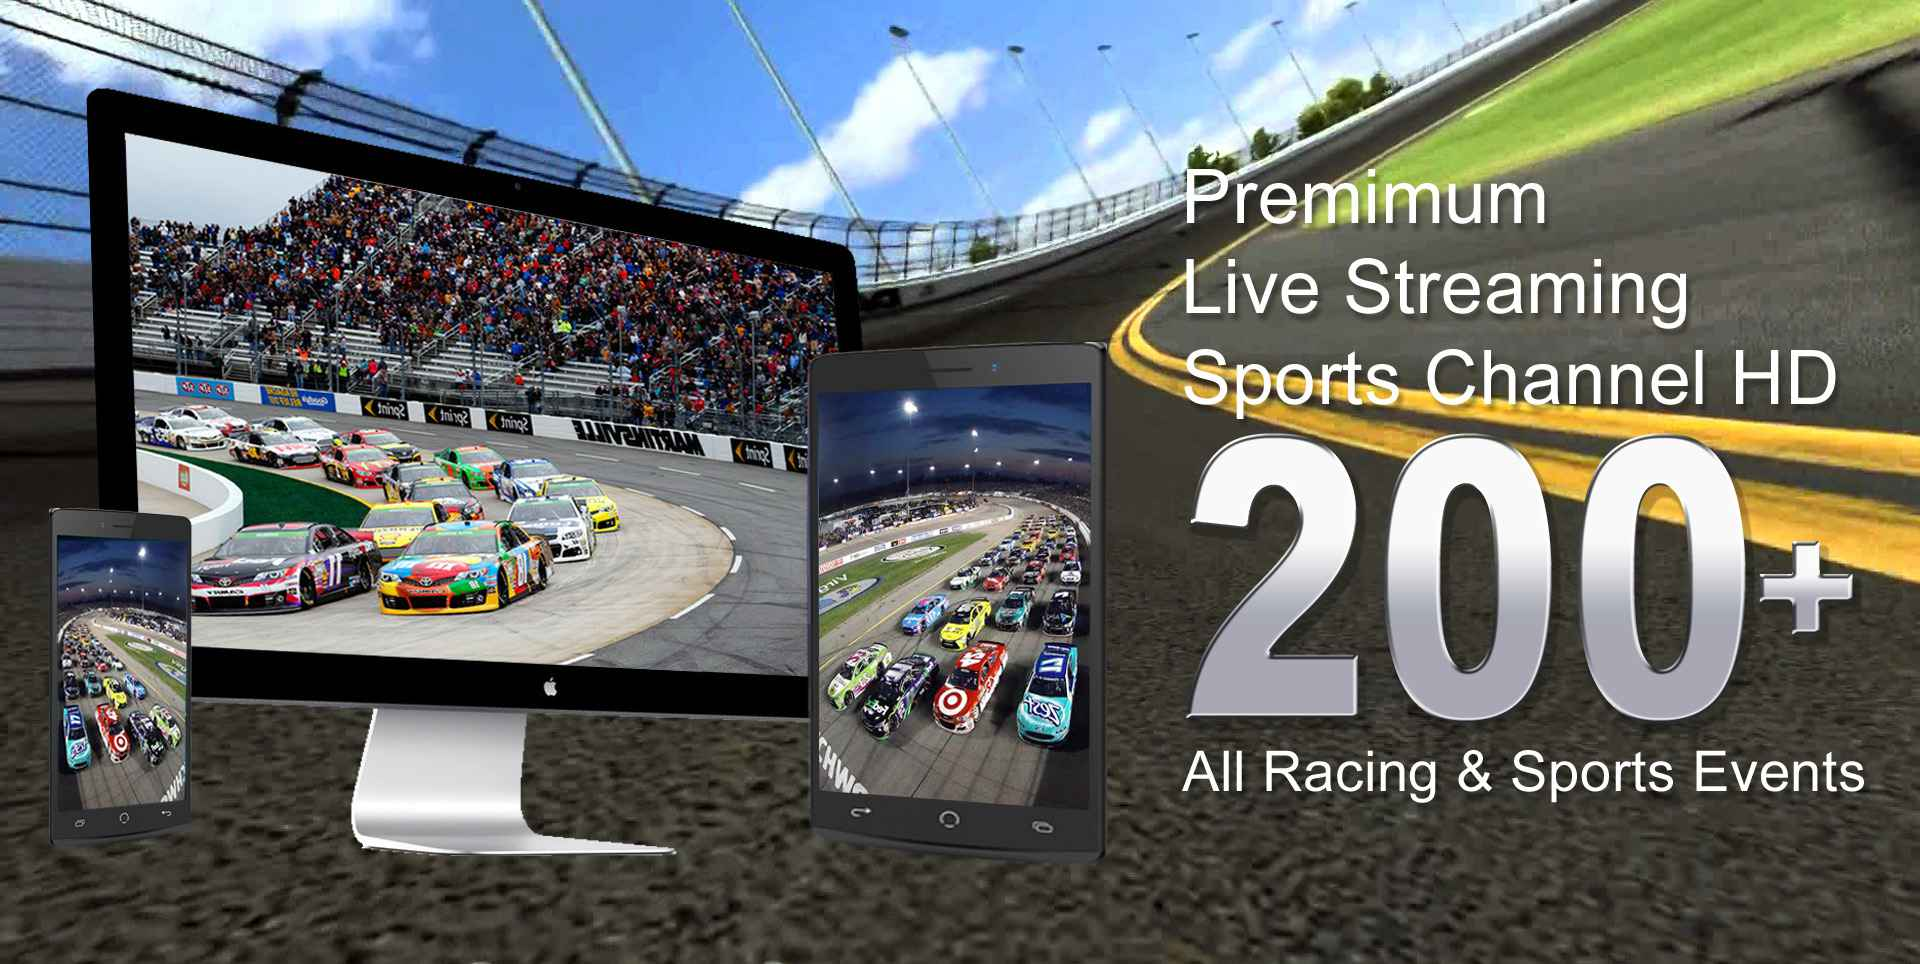 Nascar Race Virginia 529 College Savings 250 Online